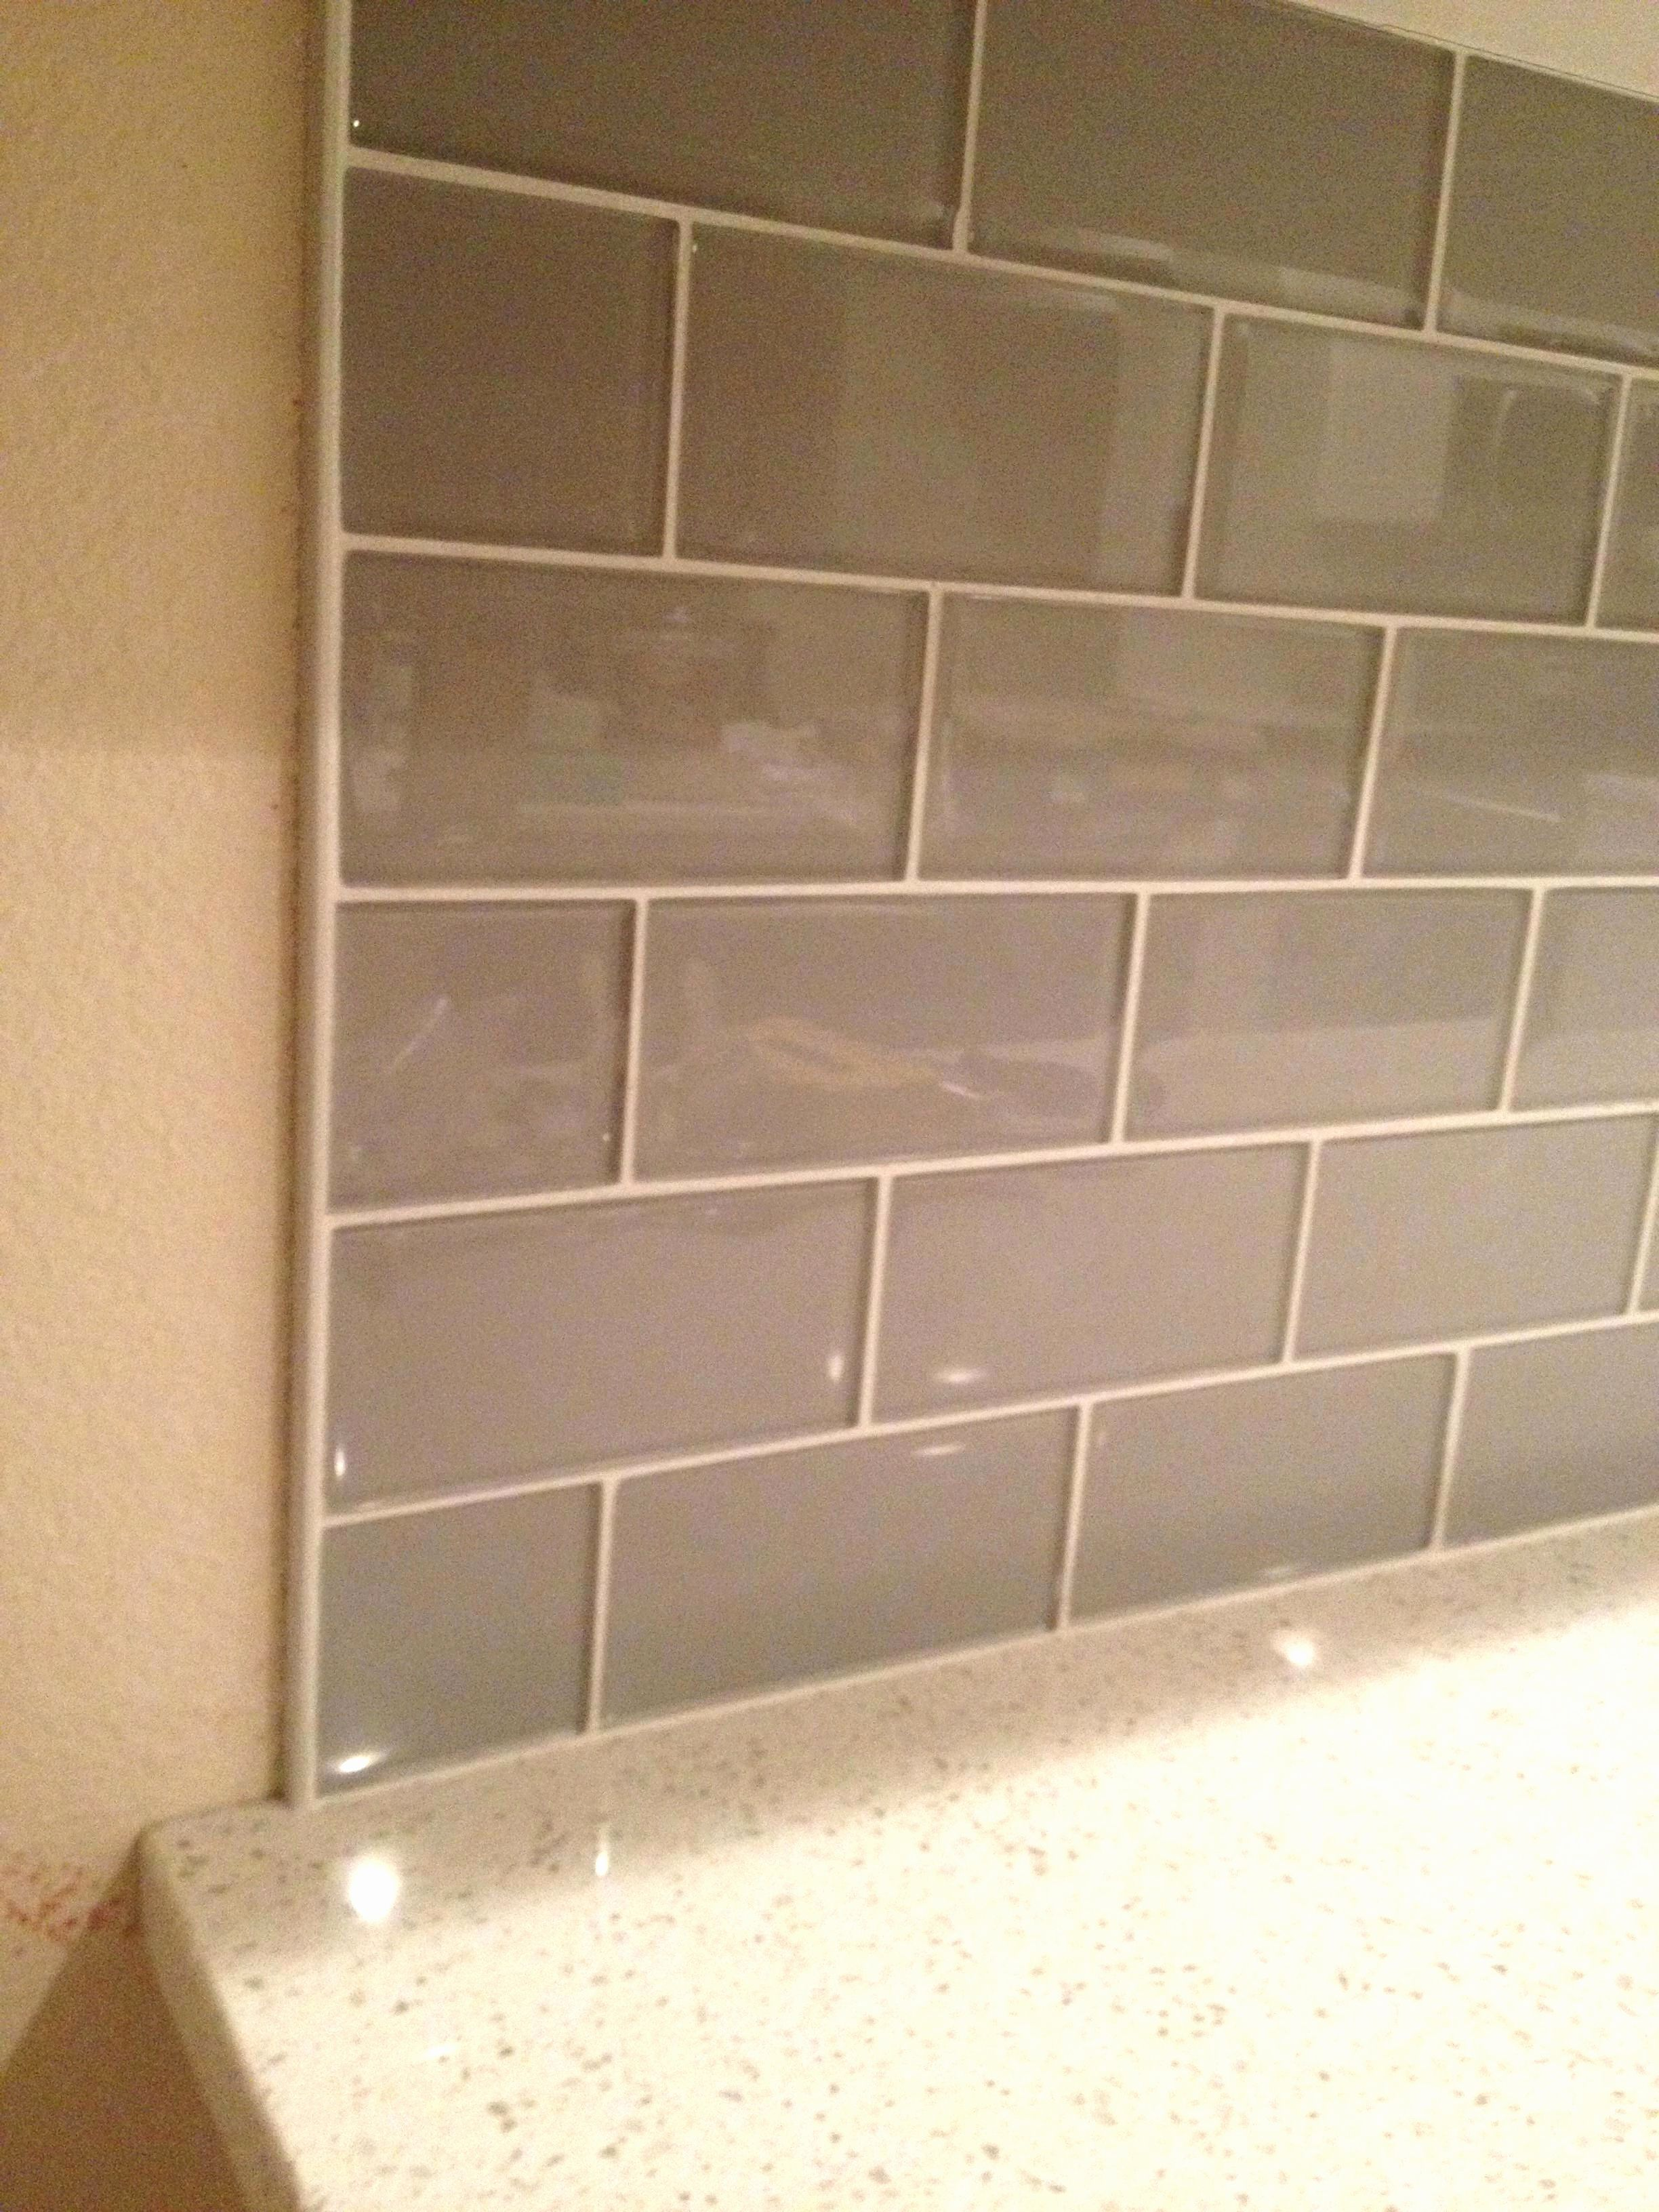 Kitchen Backsplash Trim Ideas Inspirational Backsplash Tile Trim